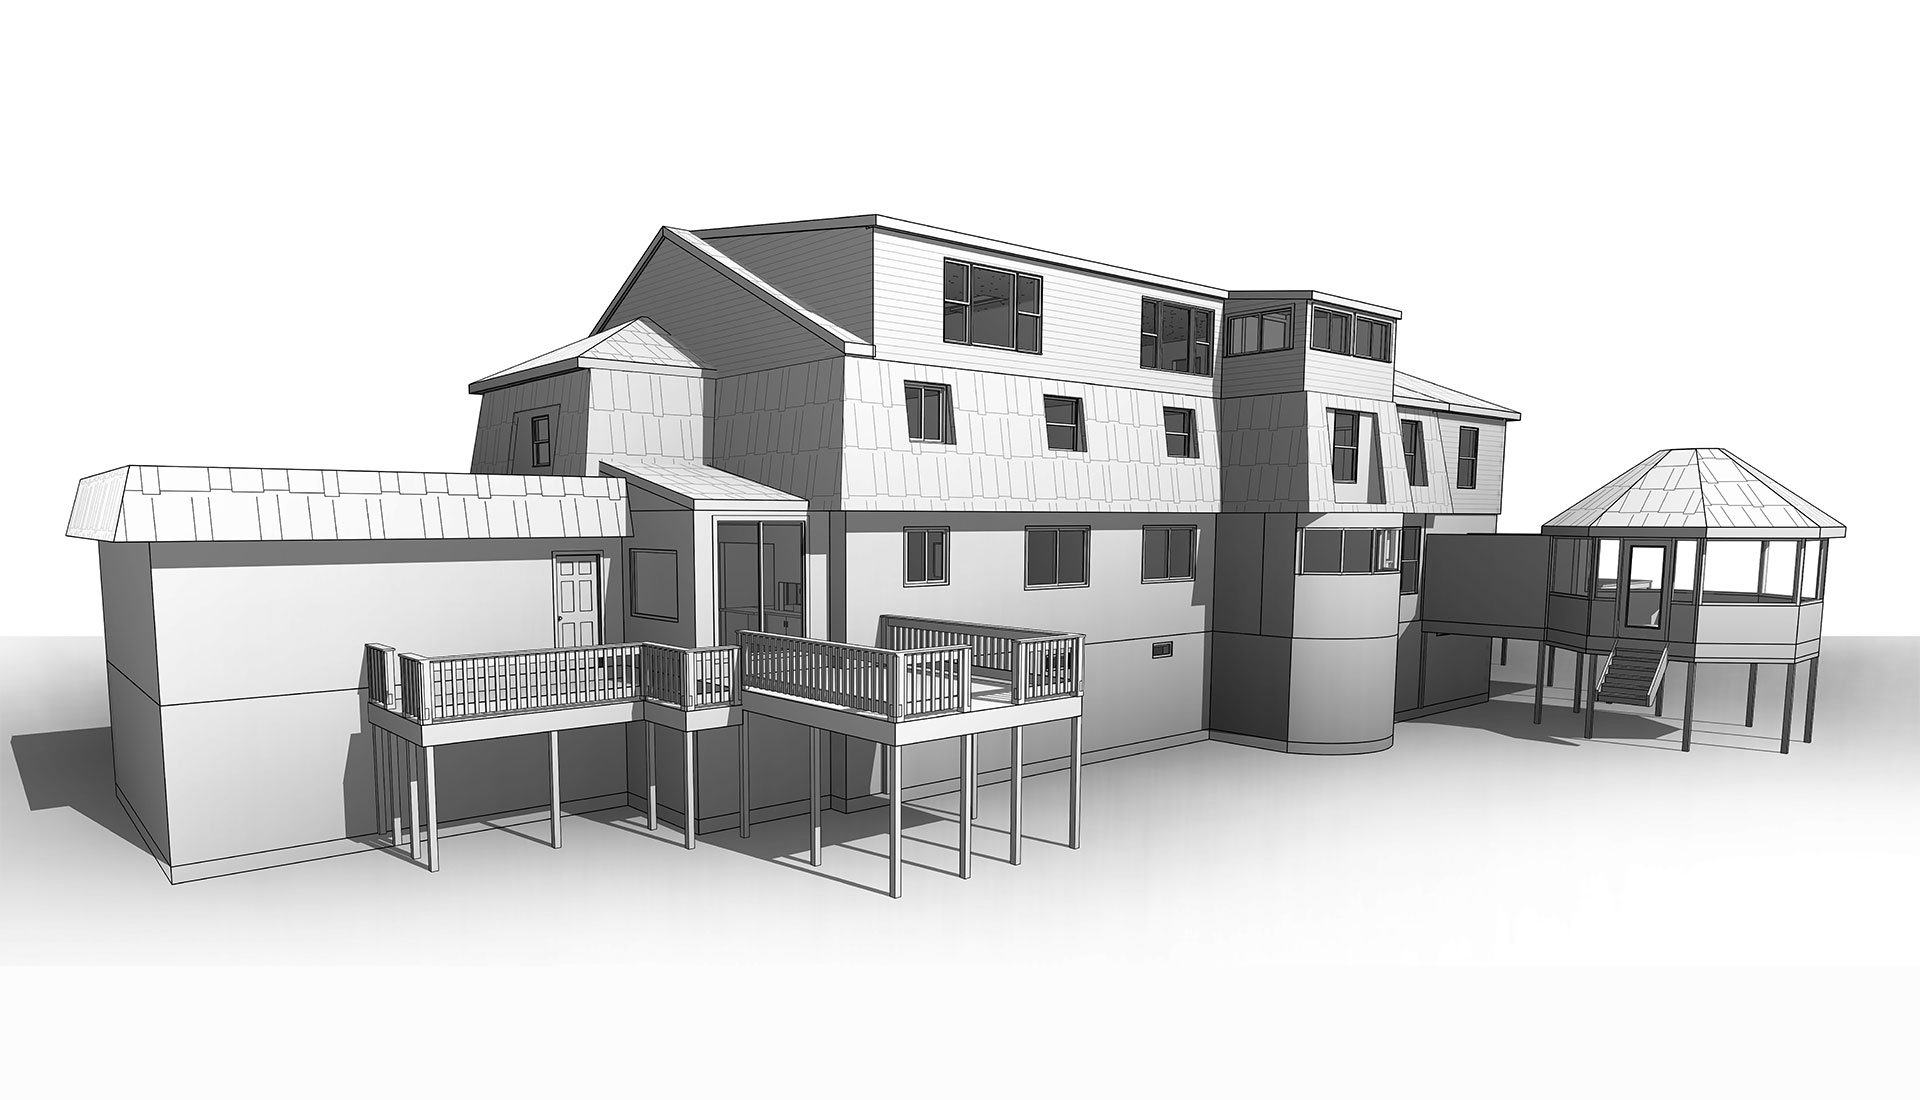 Architect-BIM-Model_Residential-Project_Modeling-Project-by-United-BIM